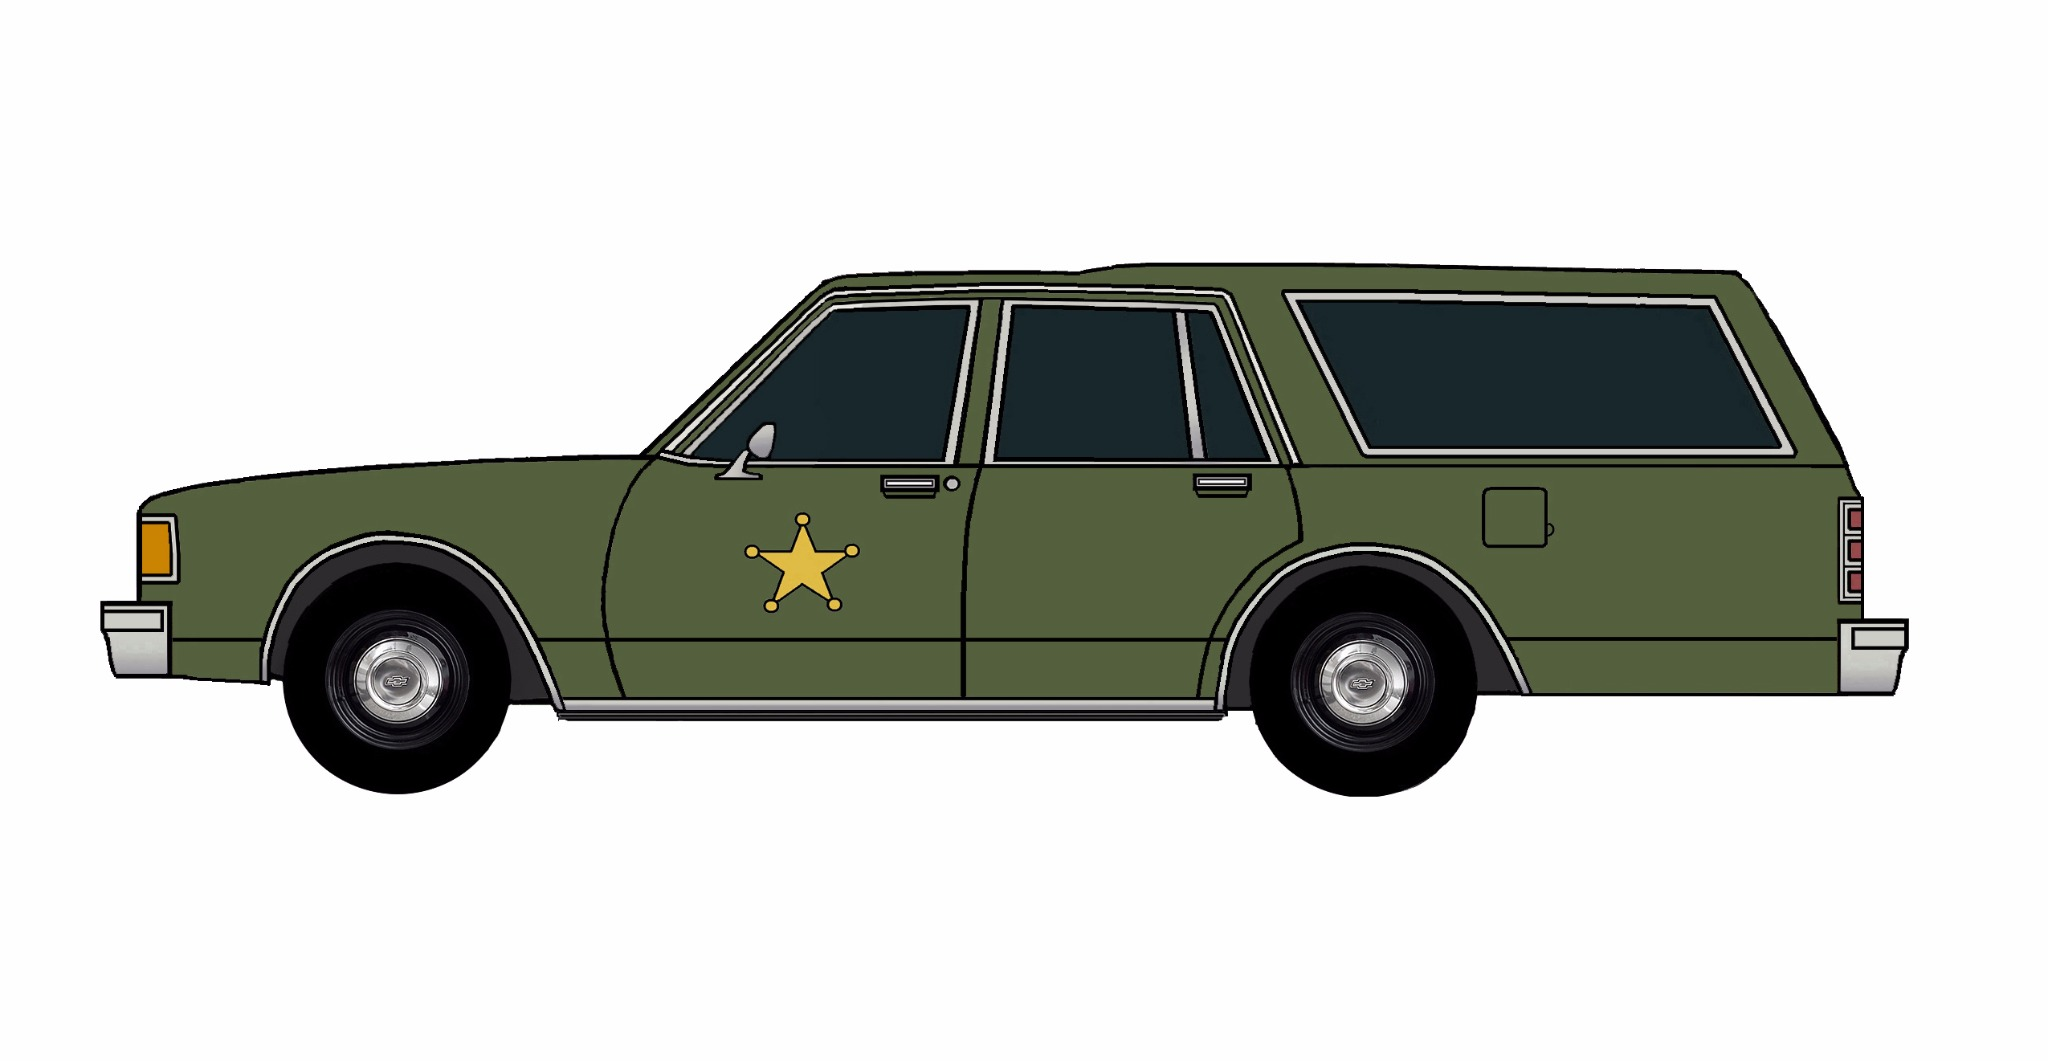 1986 Chevy Caprice 9C1 Wagon ARMY GREEN